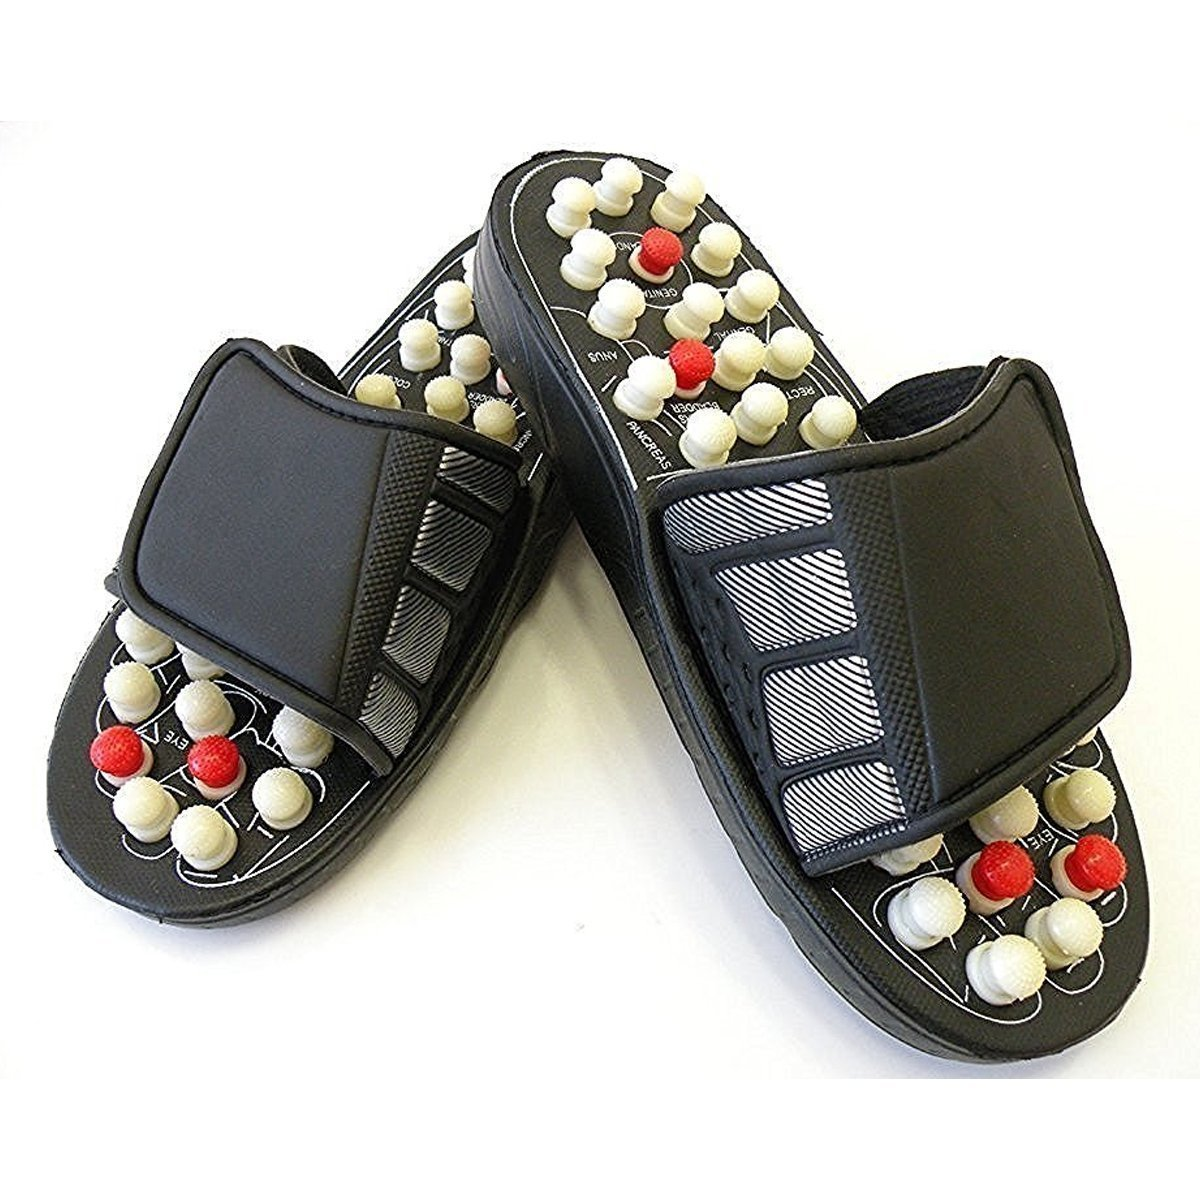 b18f101b3 Acupressure Massage Slippers Leg Foot Massager: Amazon.in: Health &  Personal Care